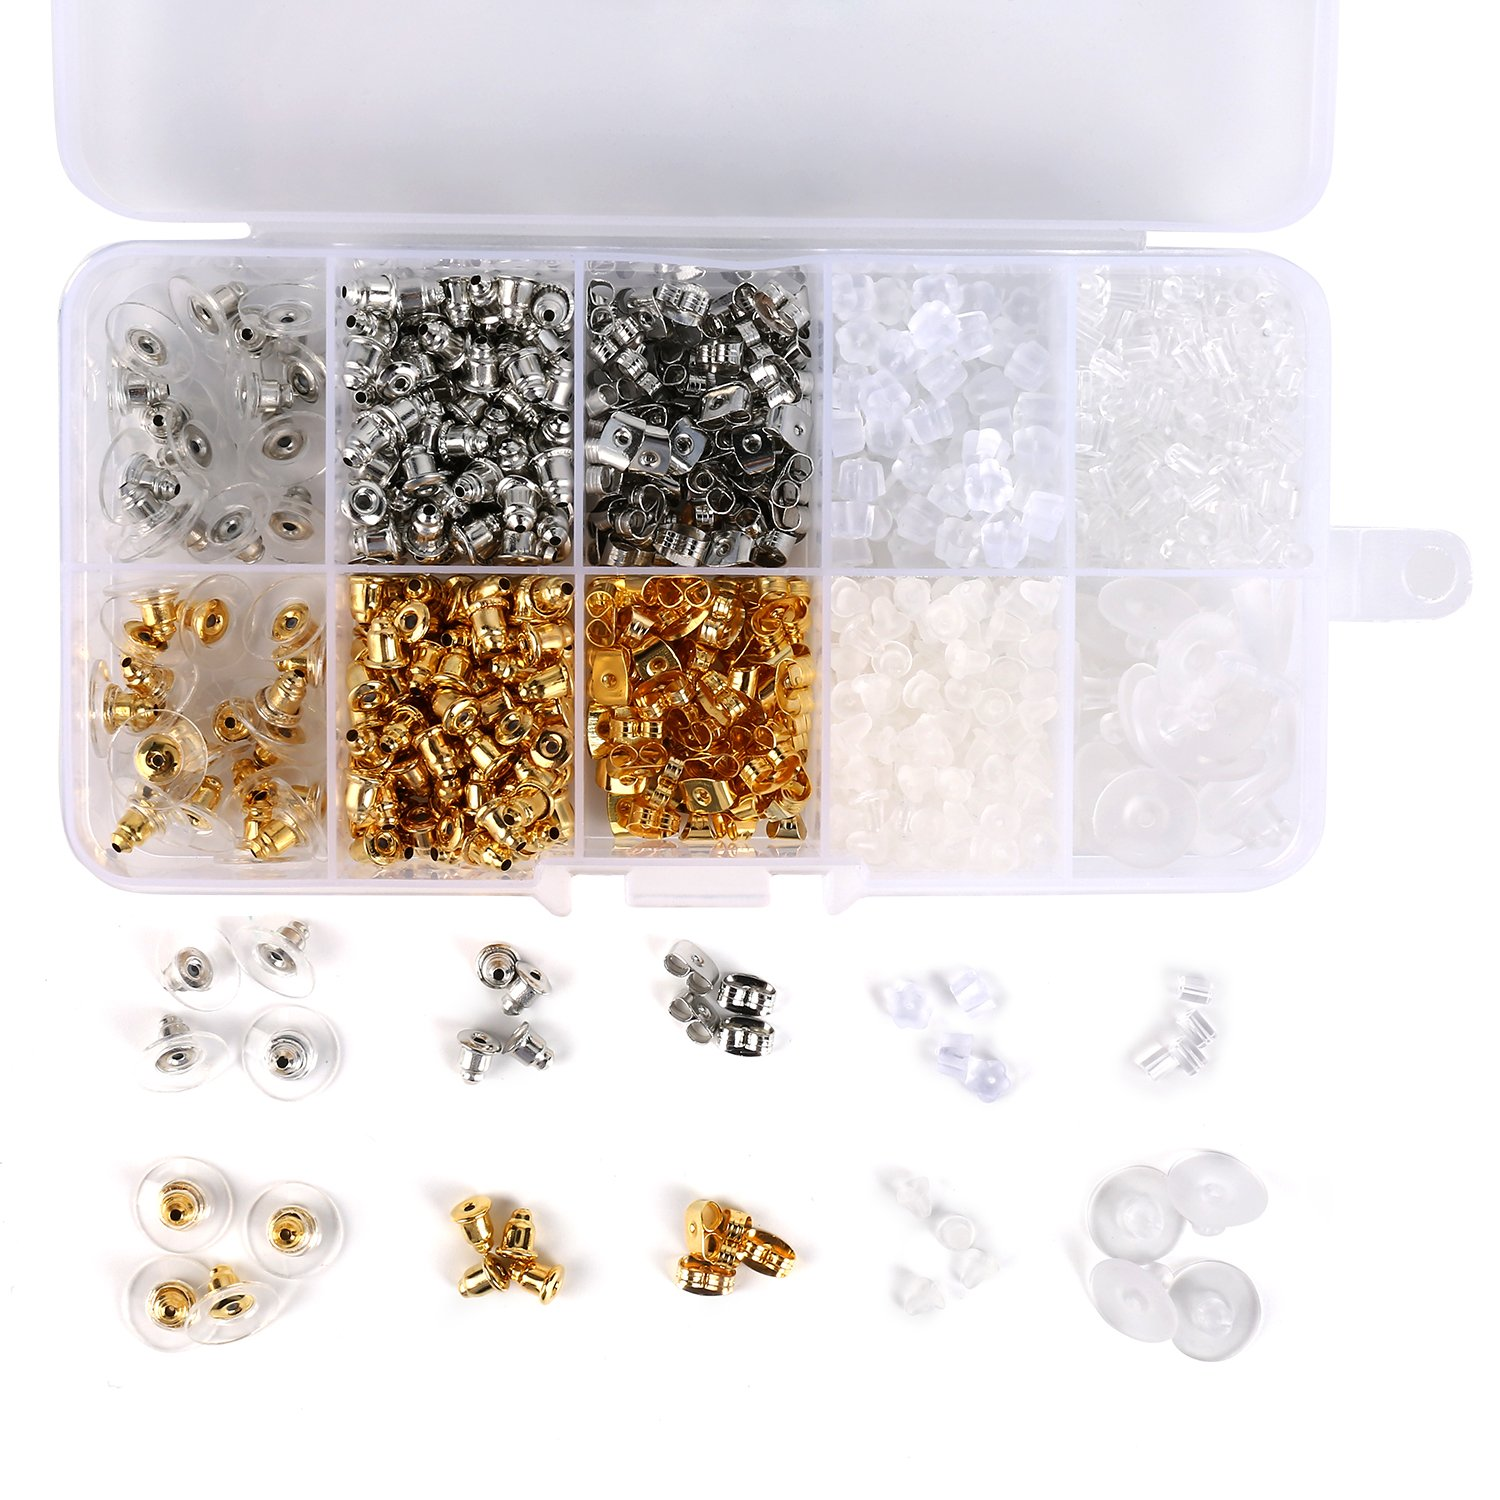 1040pcs Earring Backs, BetyBedy 10 Styles Earring Backings Kit, Metal Plastic Rubber Earring Back Clips Bullet Butterfly Flower Shape